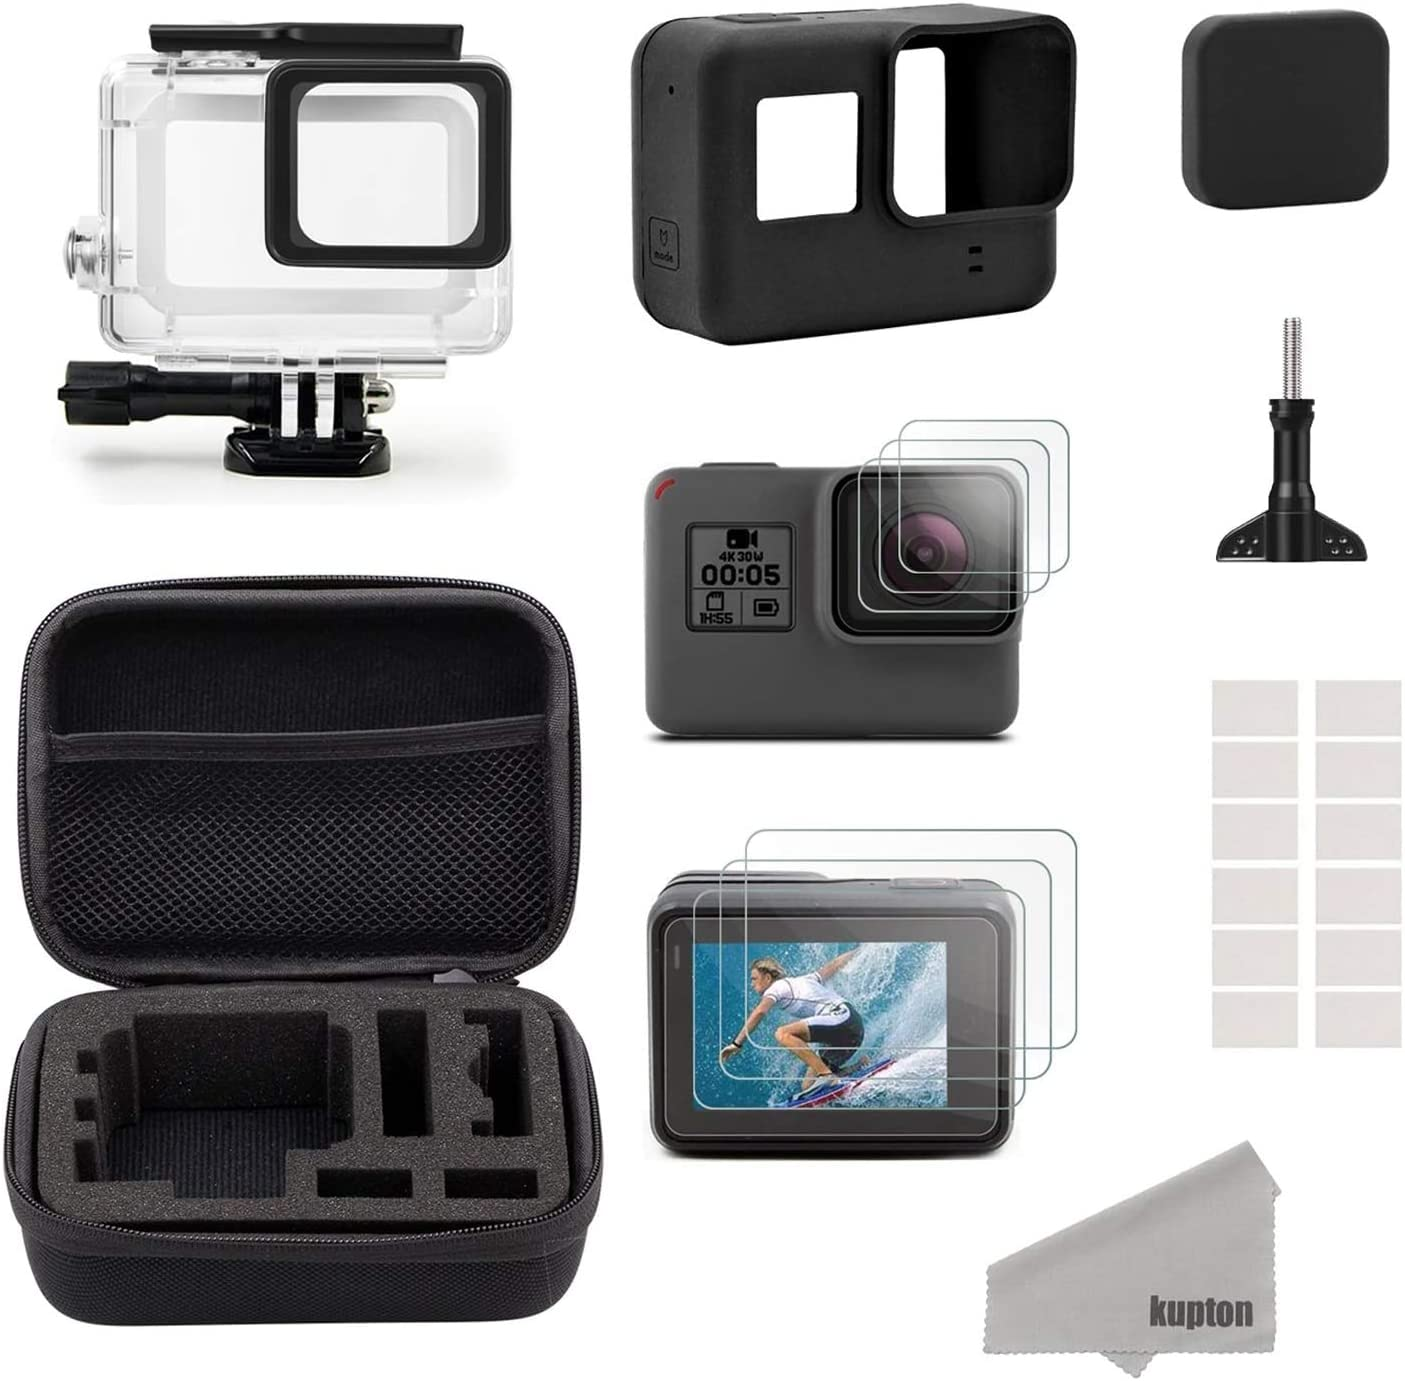 Kupton Accessories Compatible with GoPro Hero 10 Black/ 10/10 Starter Kit  Travel Case + Housing Case + Screen Protector + Lens Cover + Silicone Cover  for